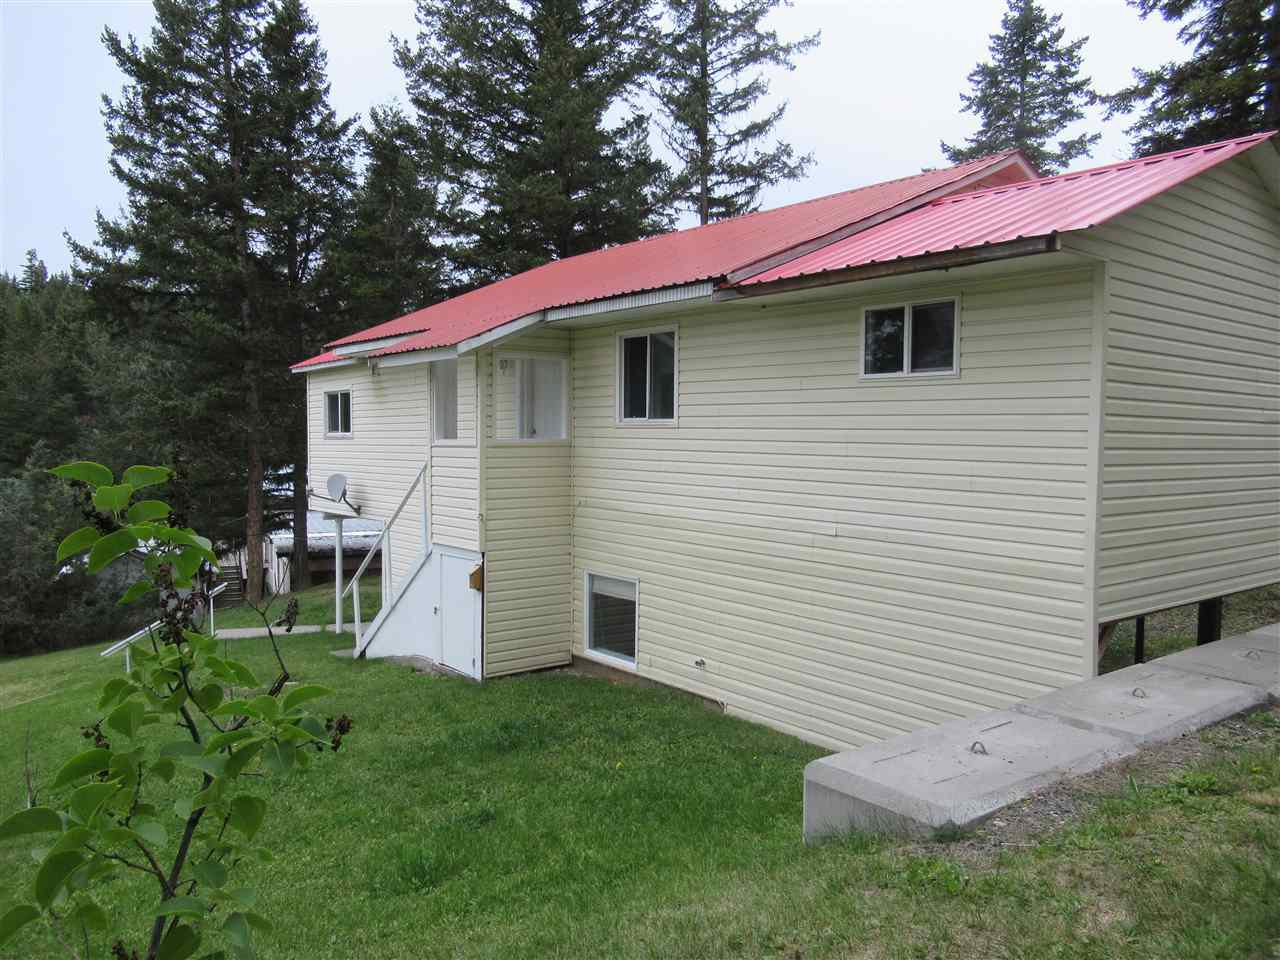 Photo 16: Photos: 3974 SCHARF Road in Williams Lake: Williams Lake - Rural North House for sale (Williams Lake (Zone 27))  : MLS®# R2409567